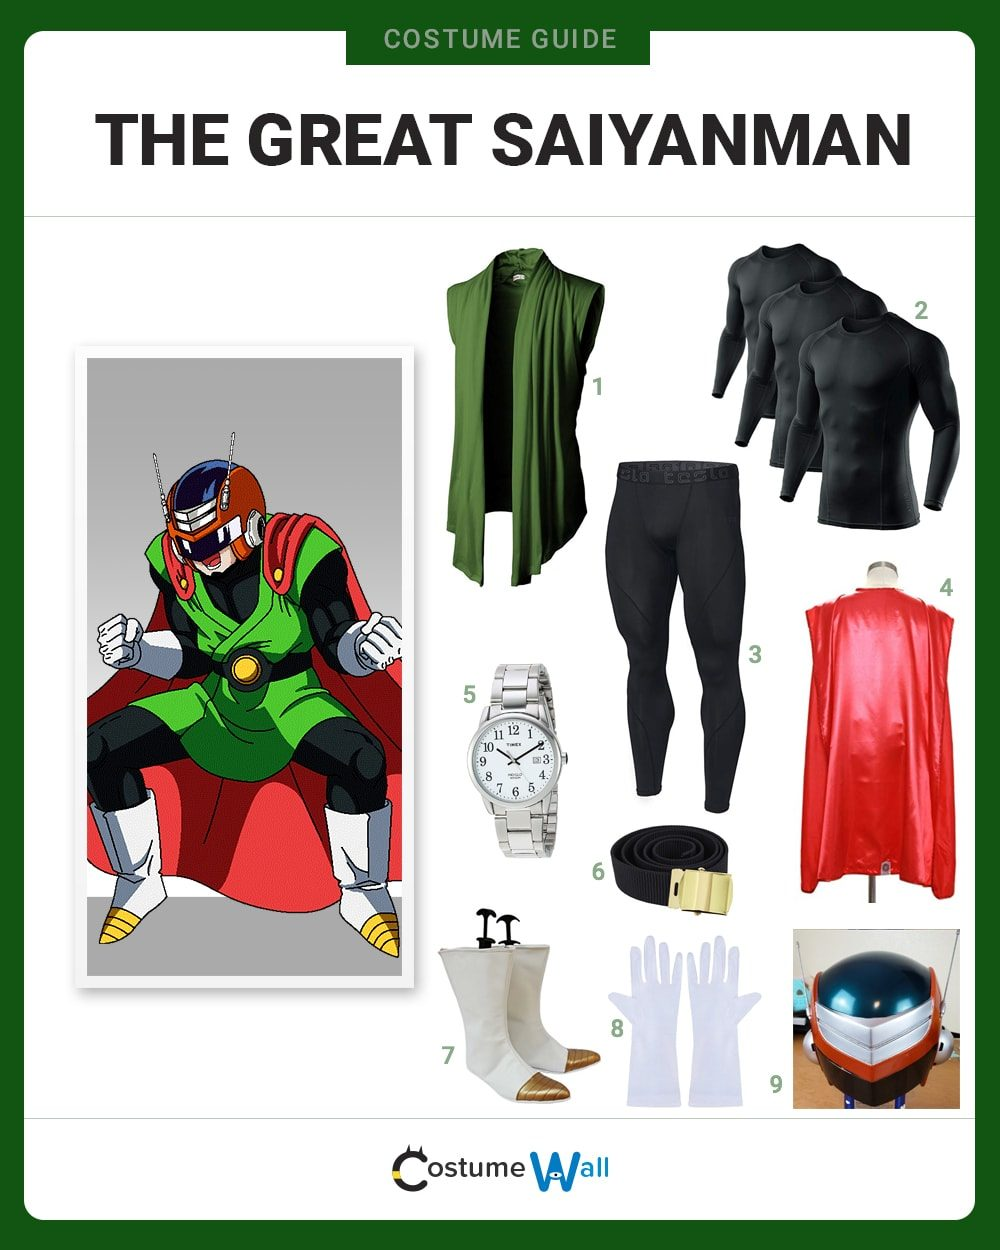 Gohan The Great Saiyanman Costume Guide